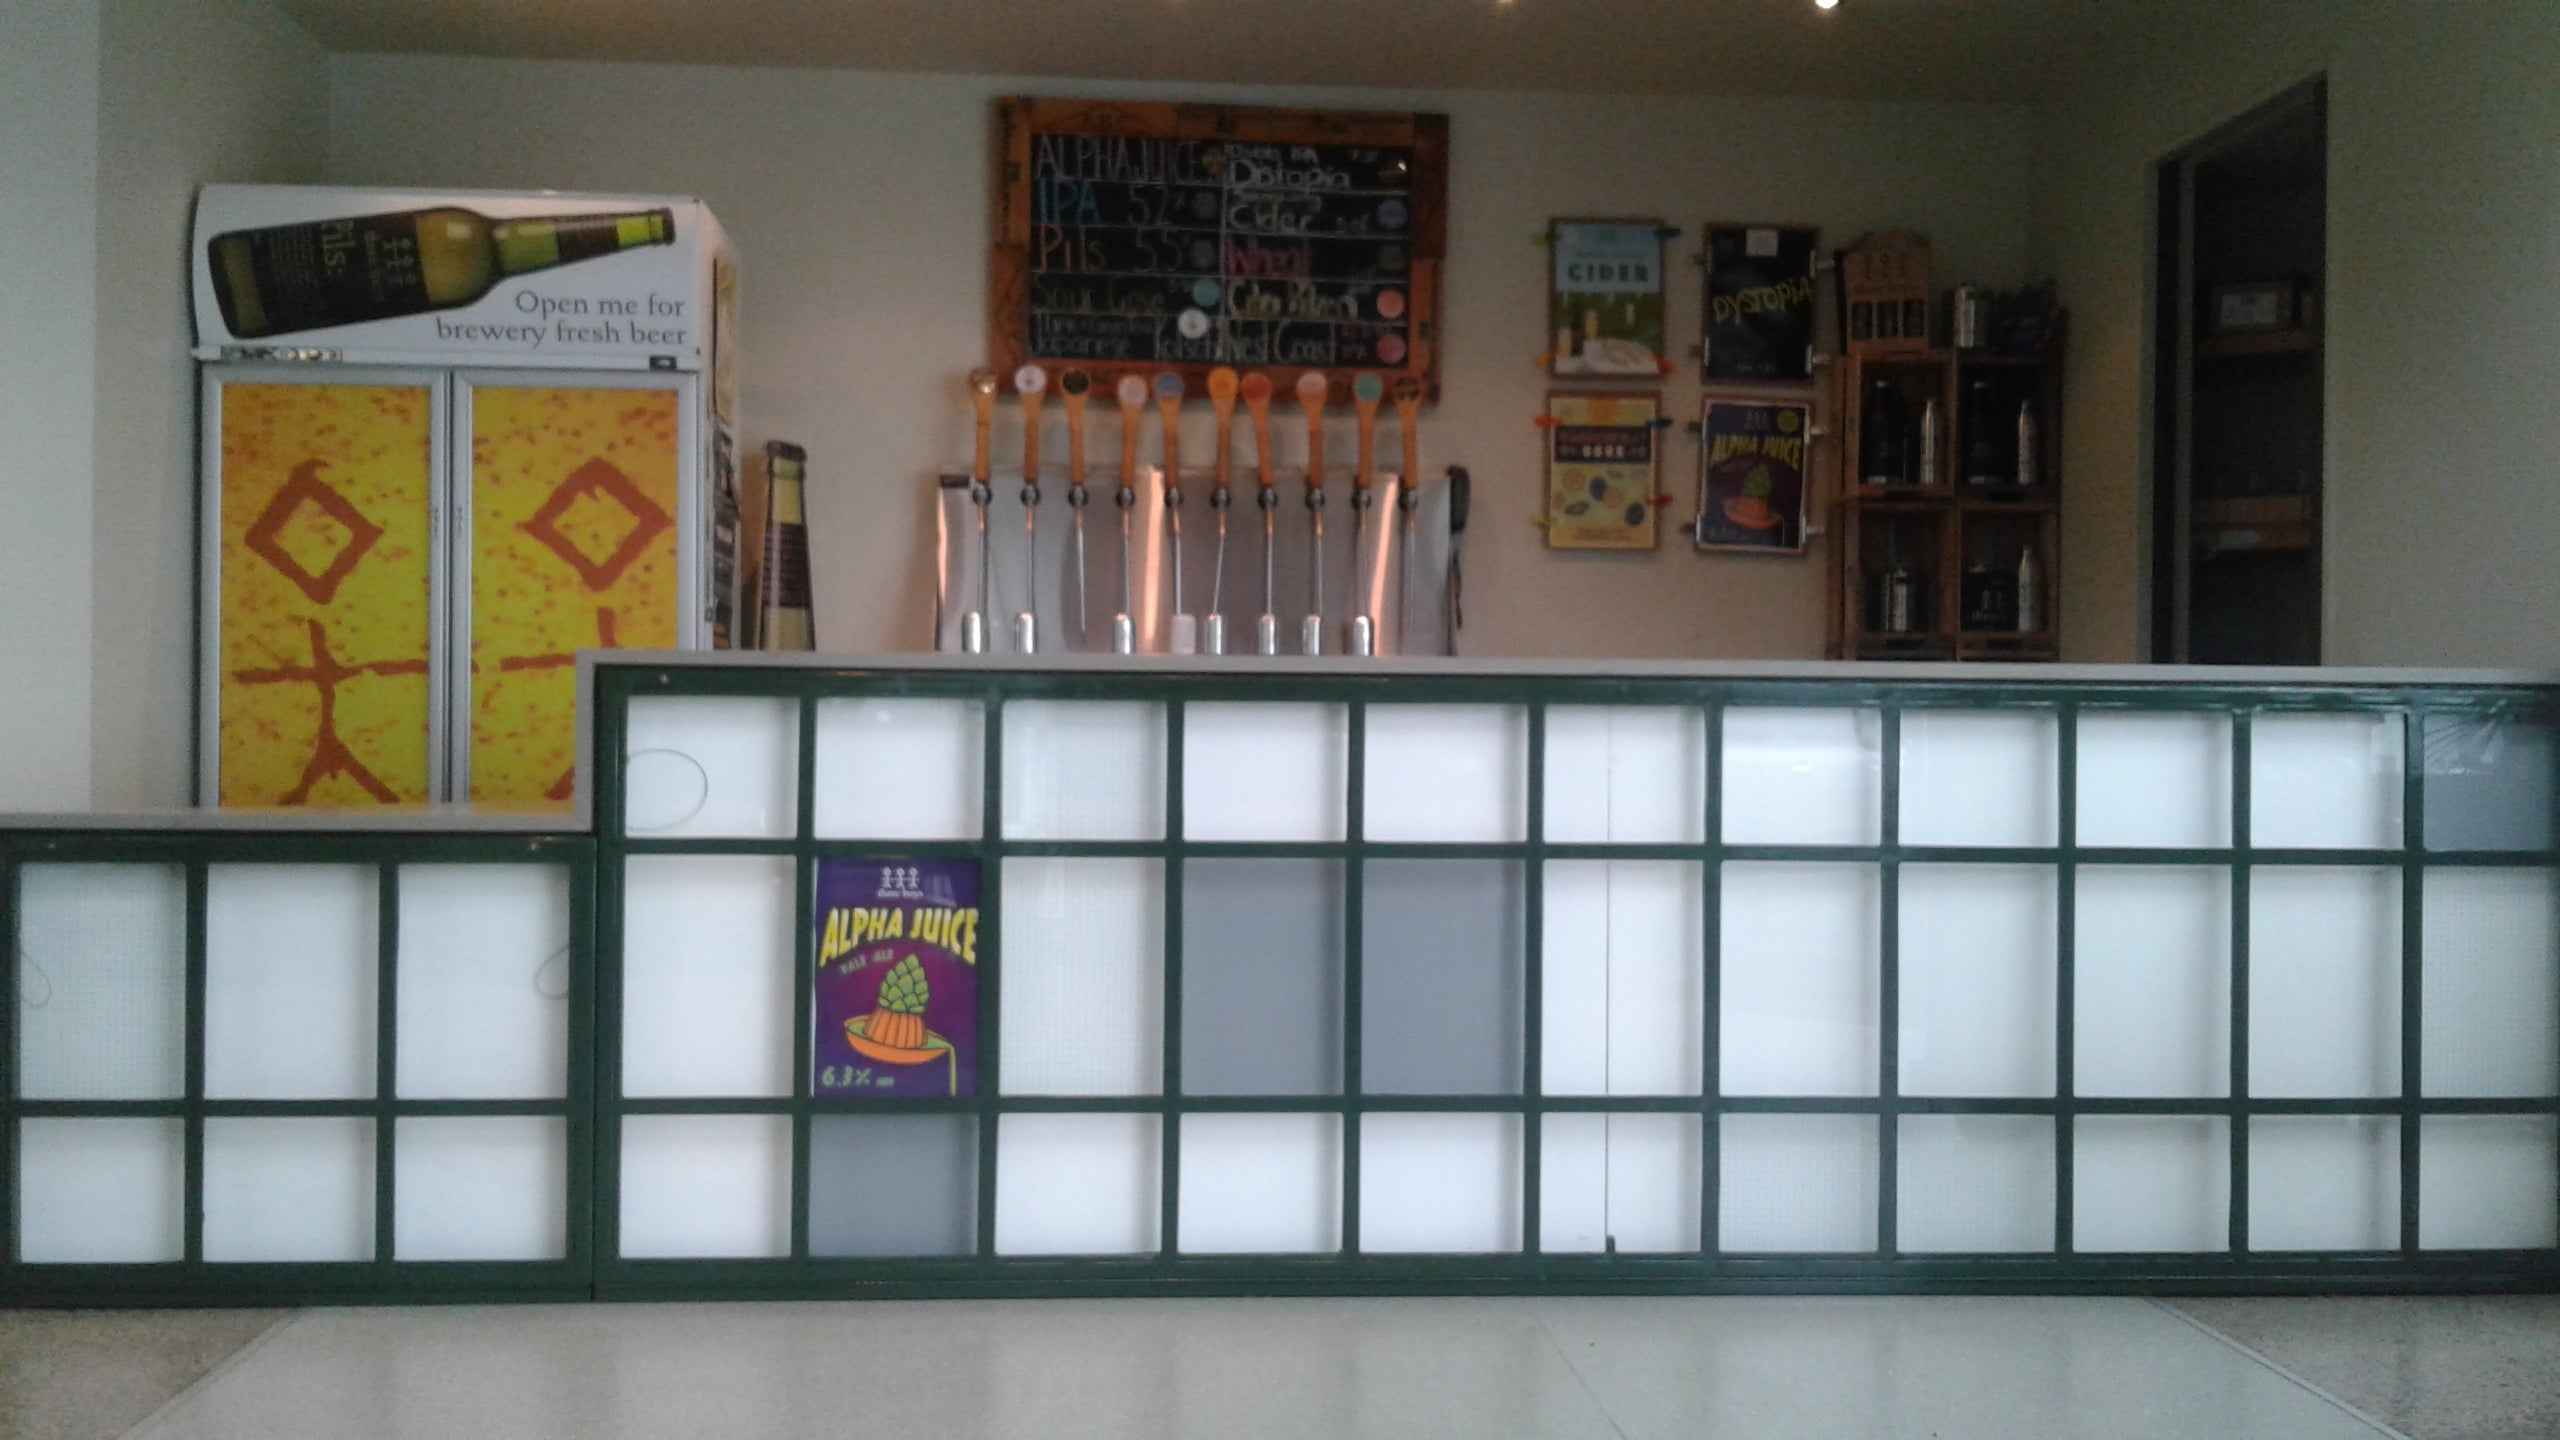 three boys brewery interior fitout bar